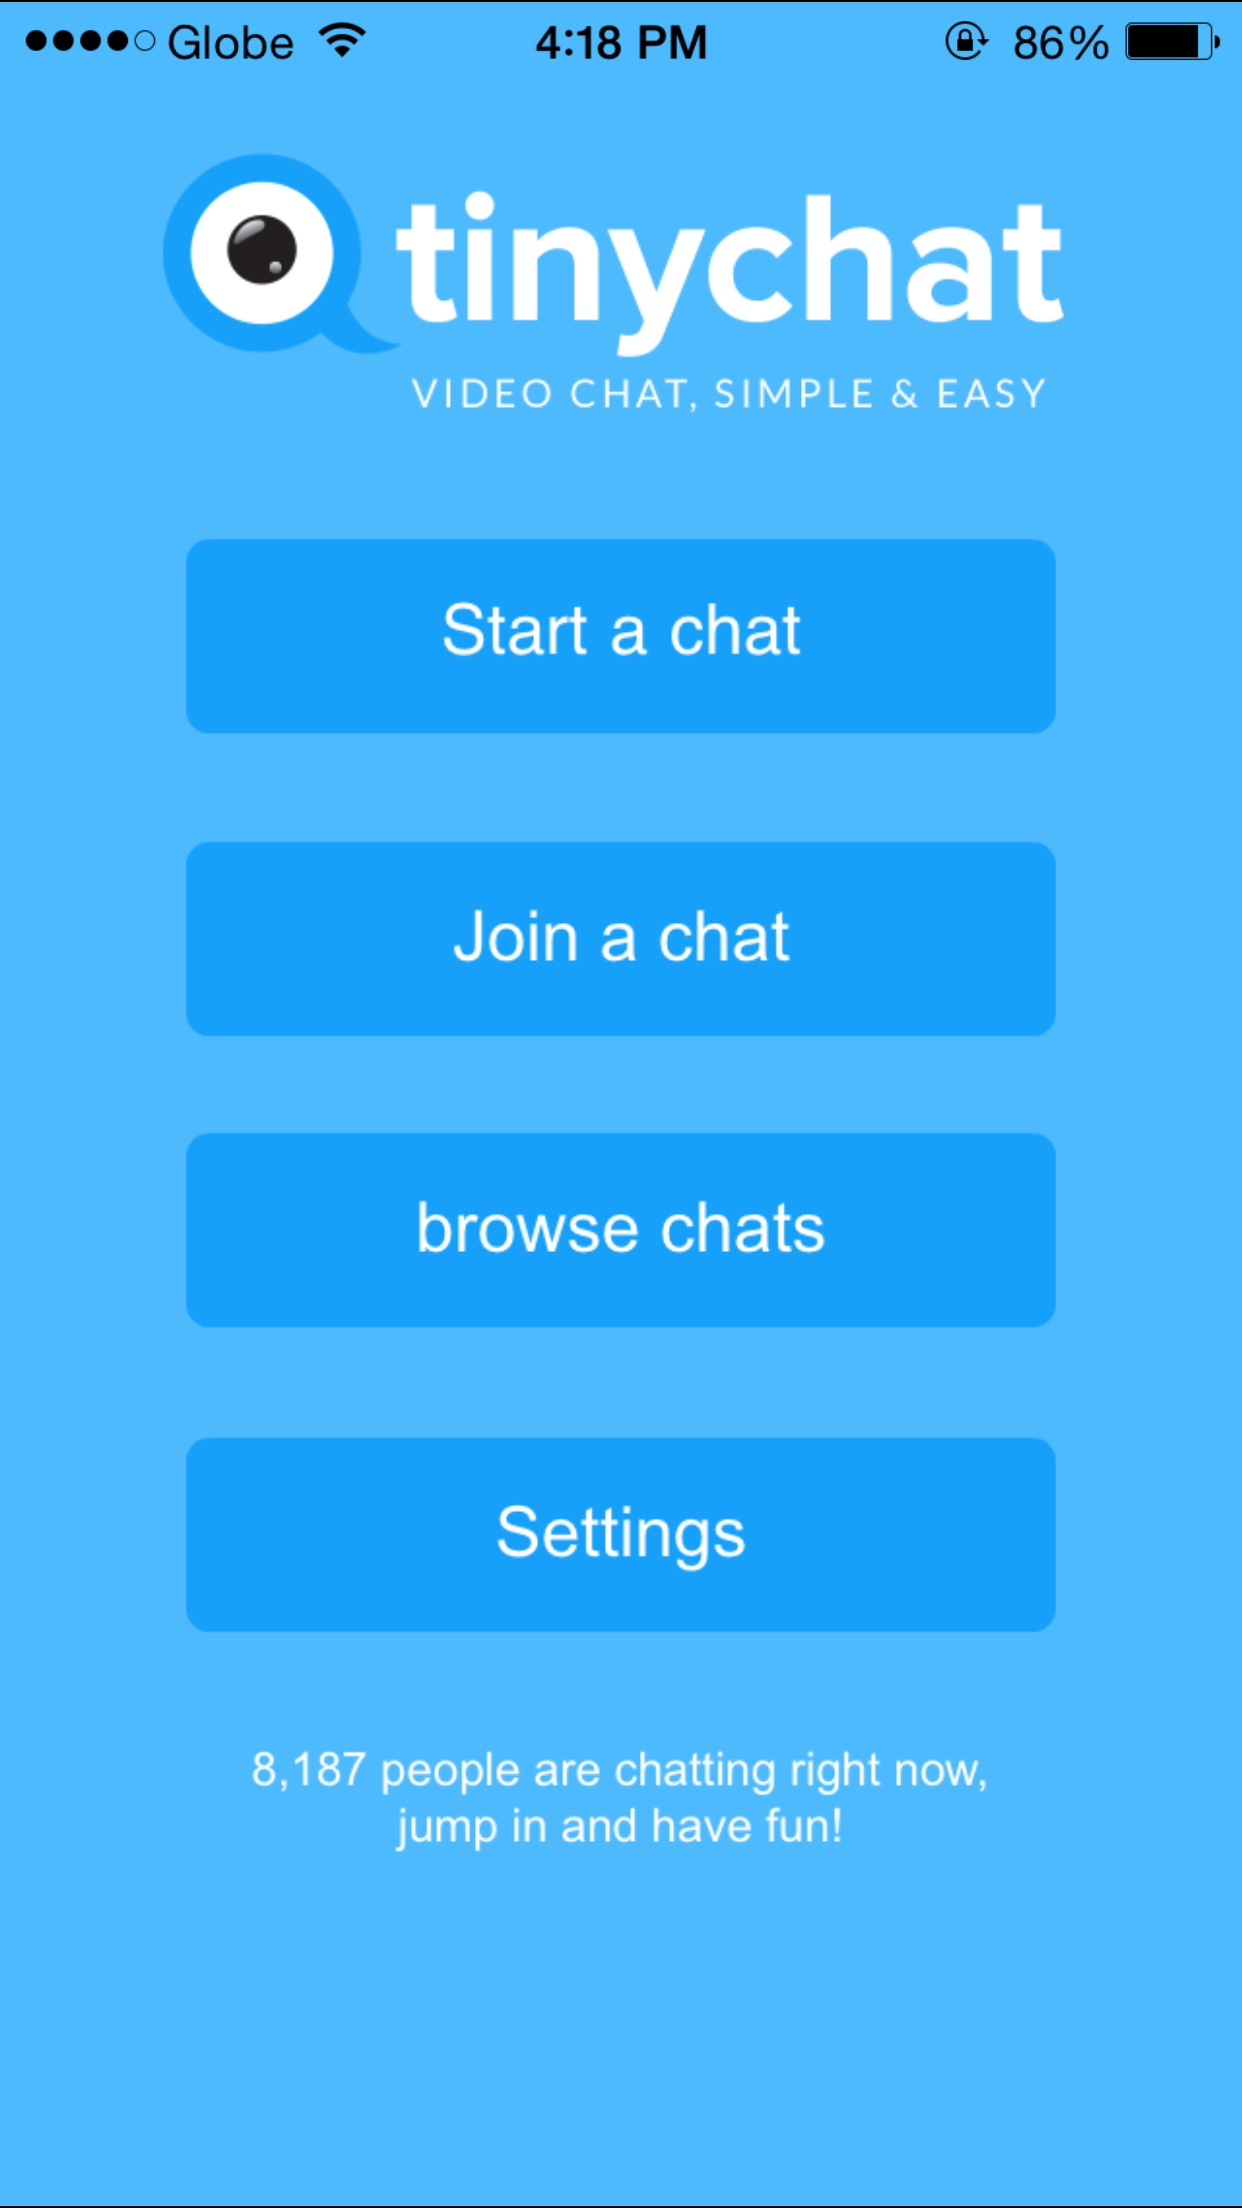 Following Paltalk acquisition, Tinychat goes free and goes 5.0 on iOS with all-new interface